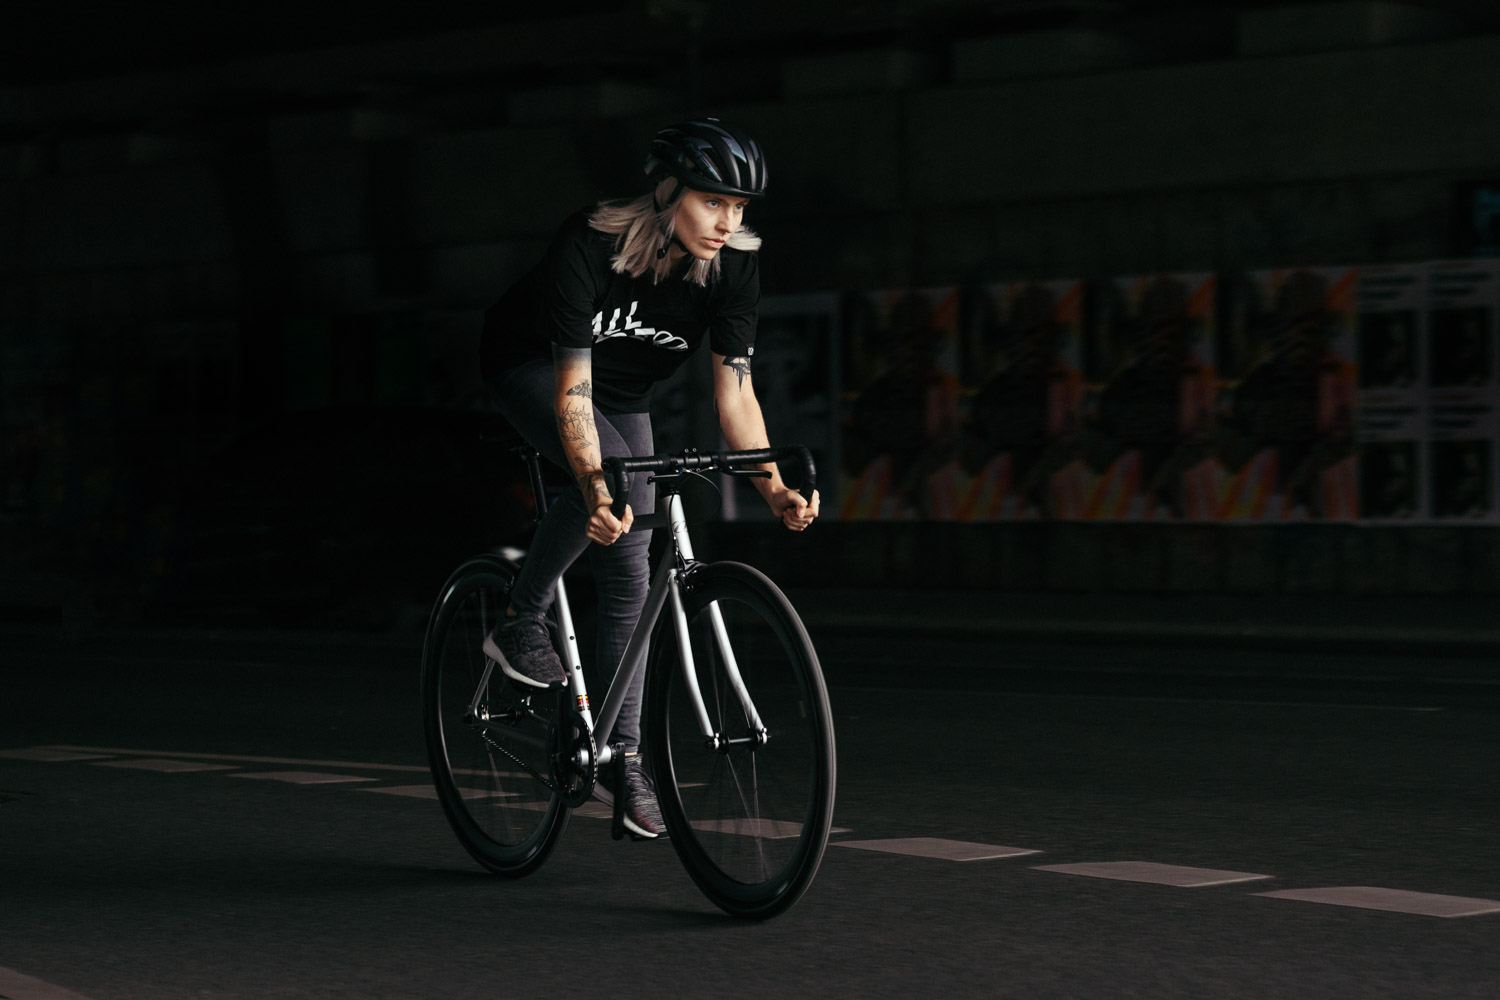 8bar-fhain-lookbook-singlespeed-fixed-gear-fixie-lr-7